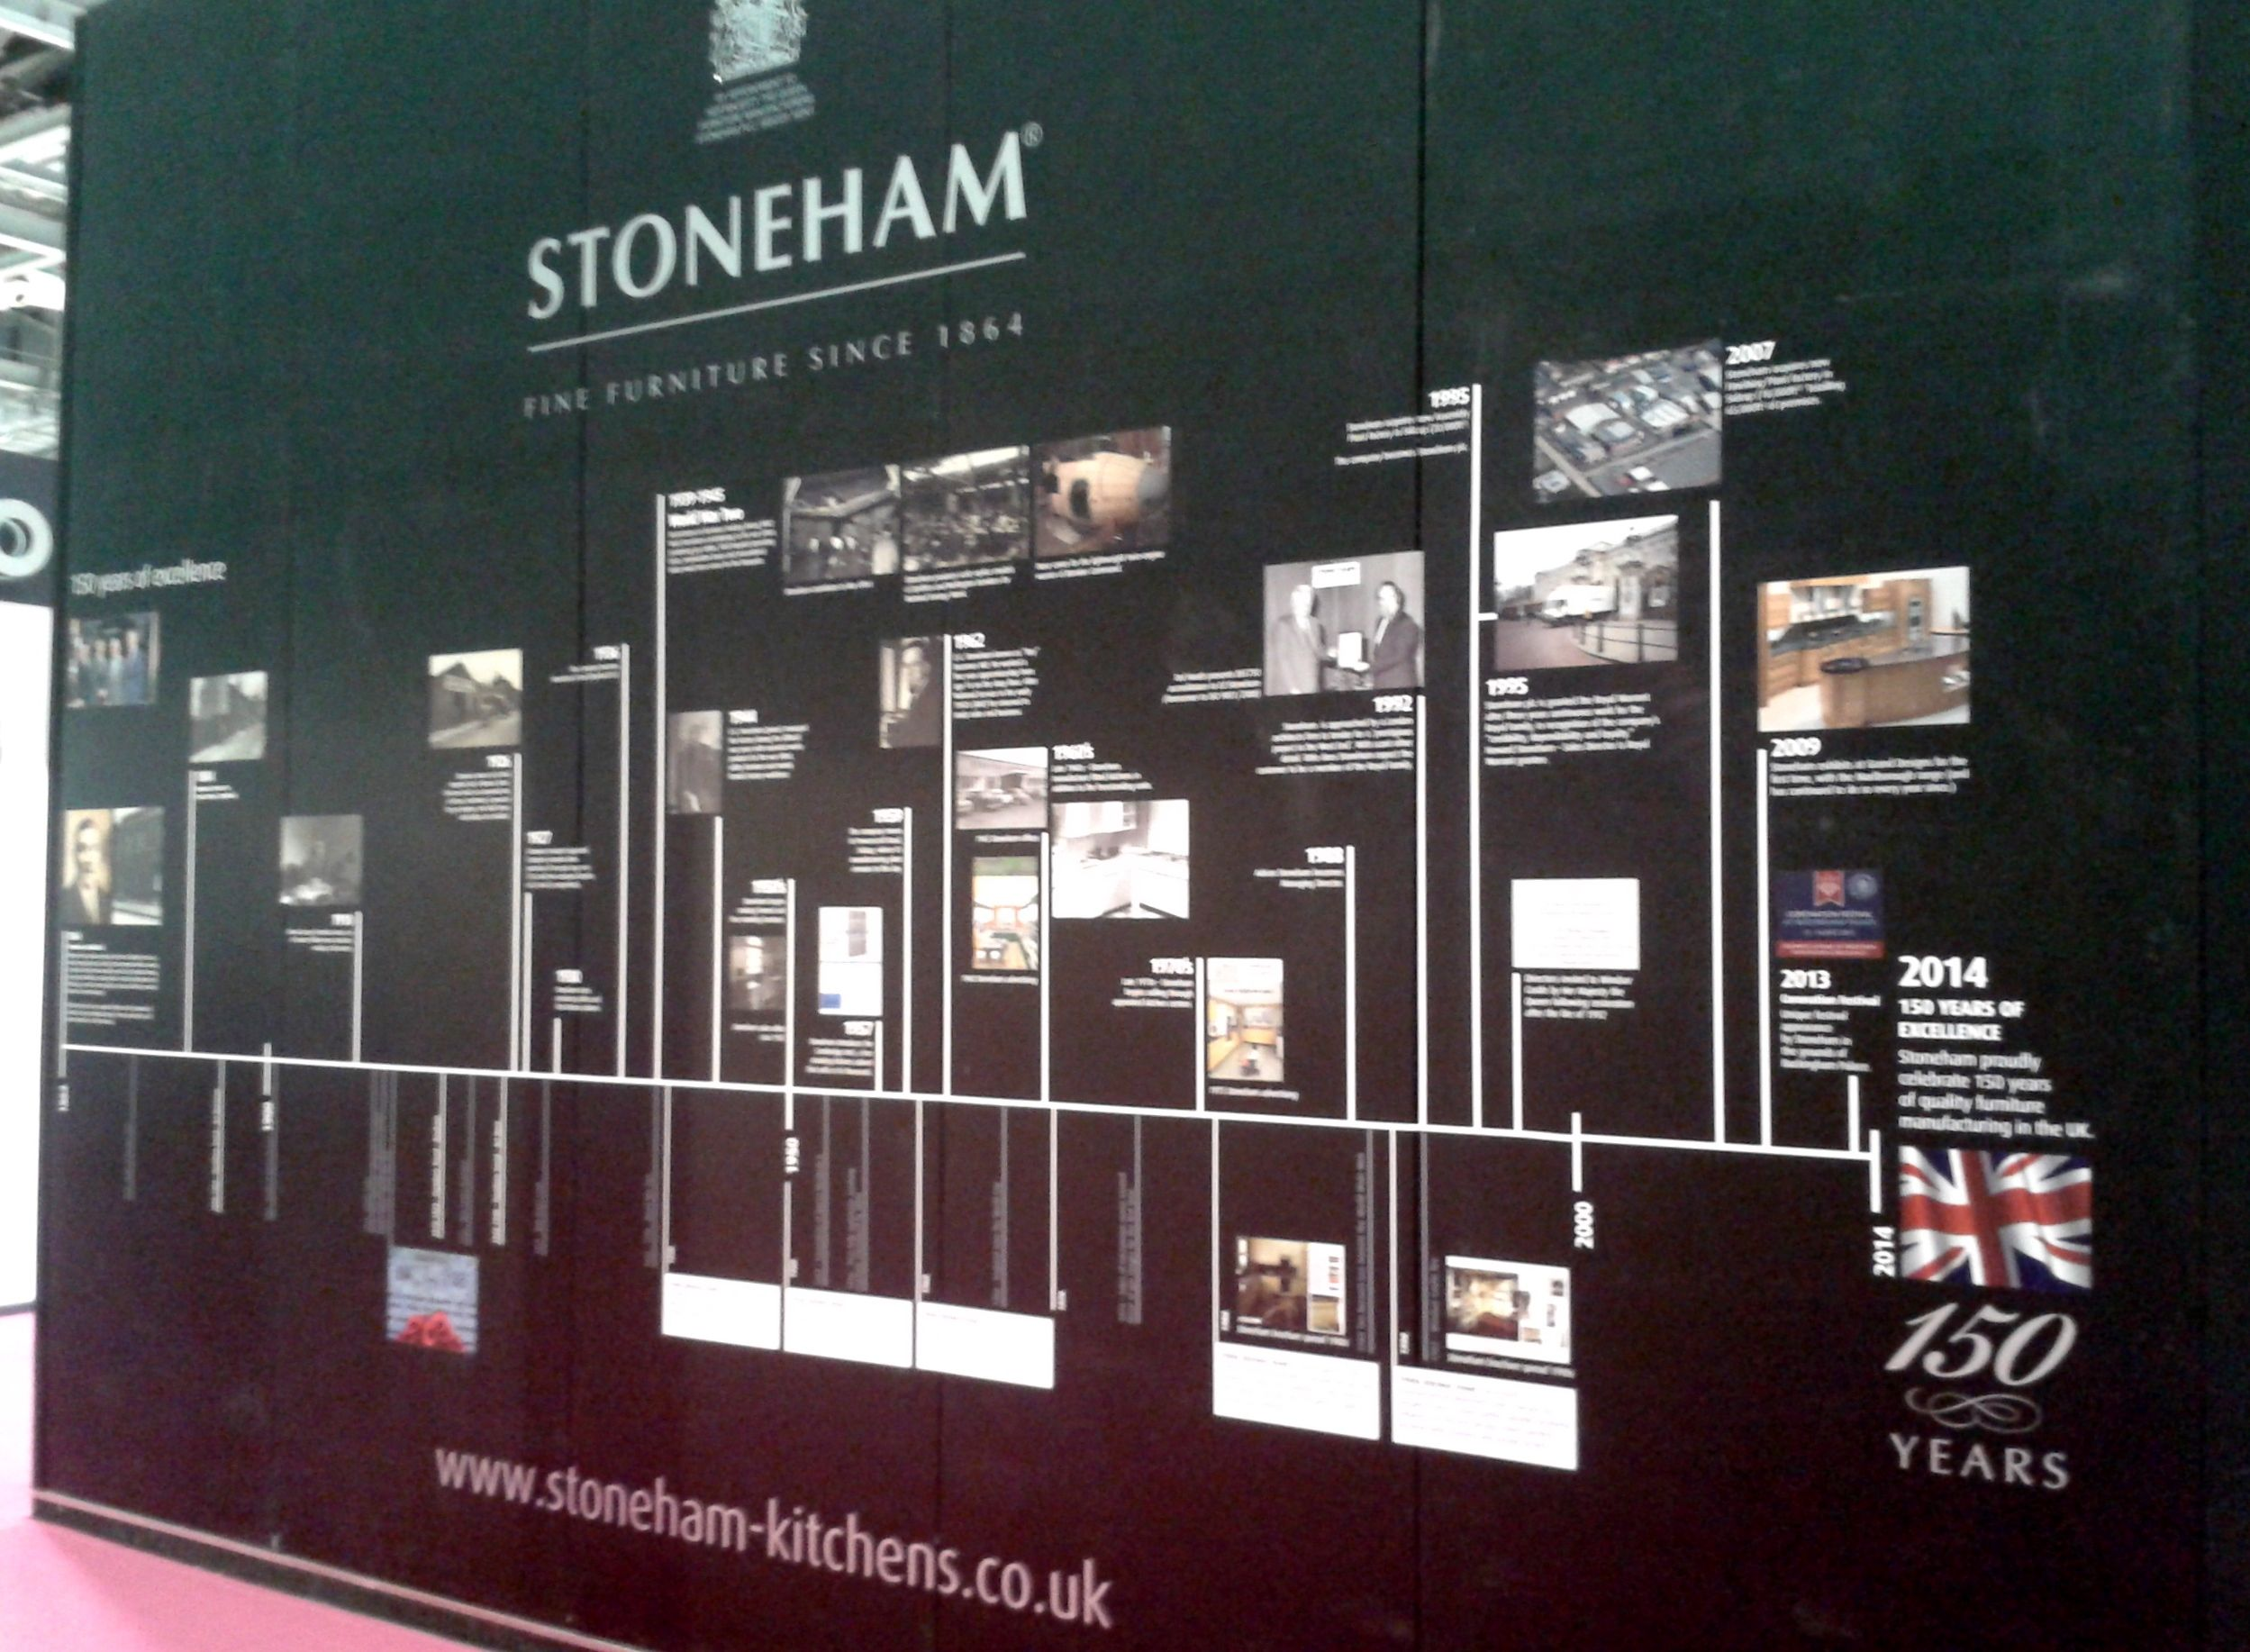 150 years of stoneham kitchens timeline at grand designs live 2014 kitchen design british on kitchen remodel timeline id=42505